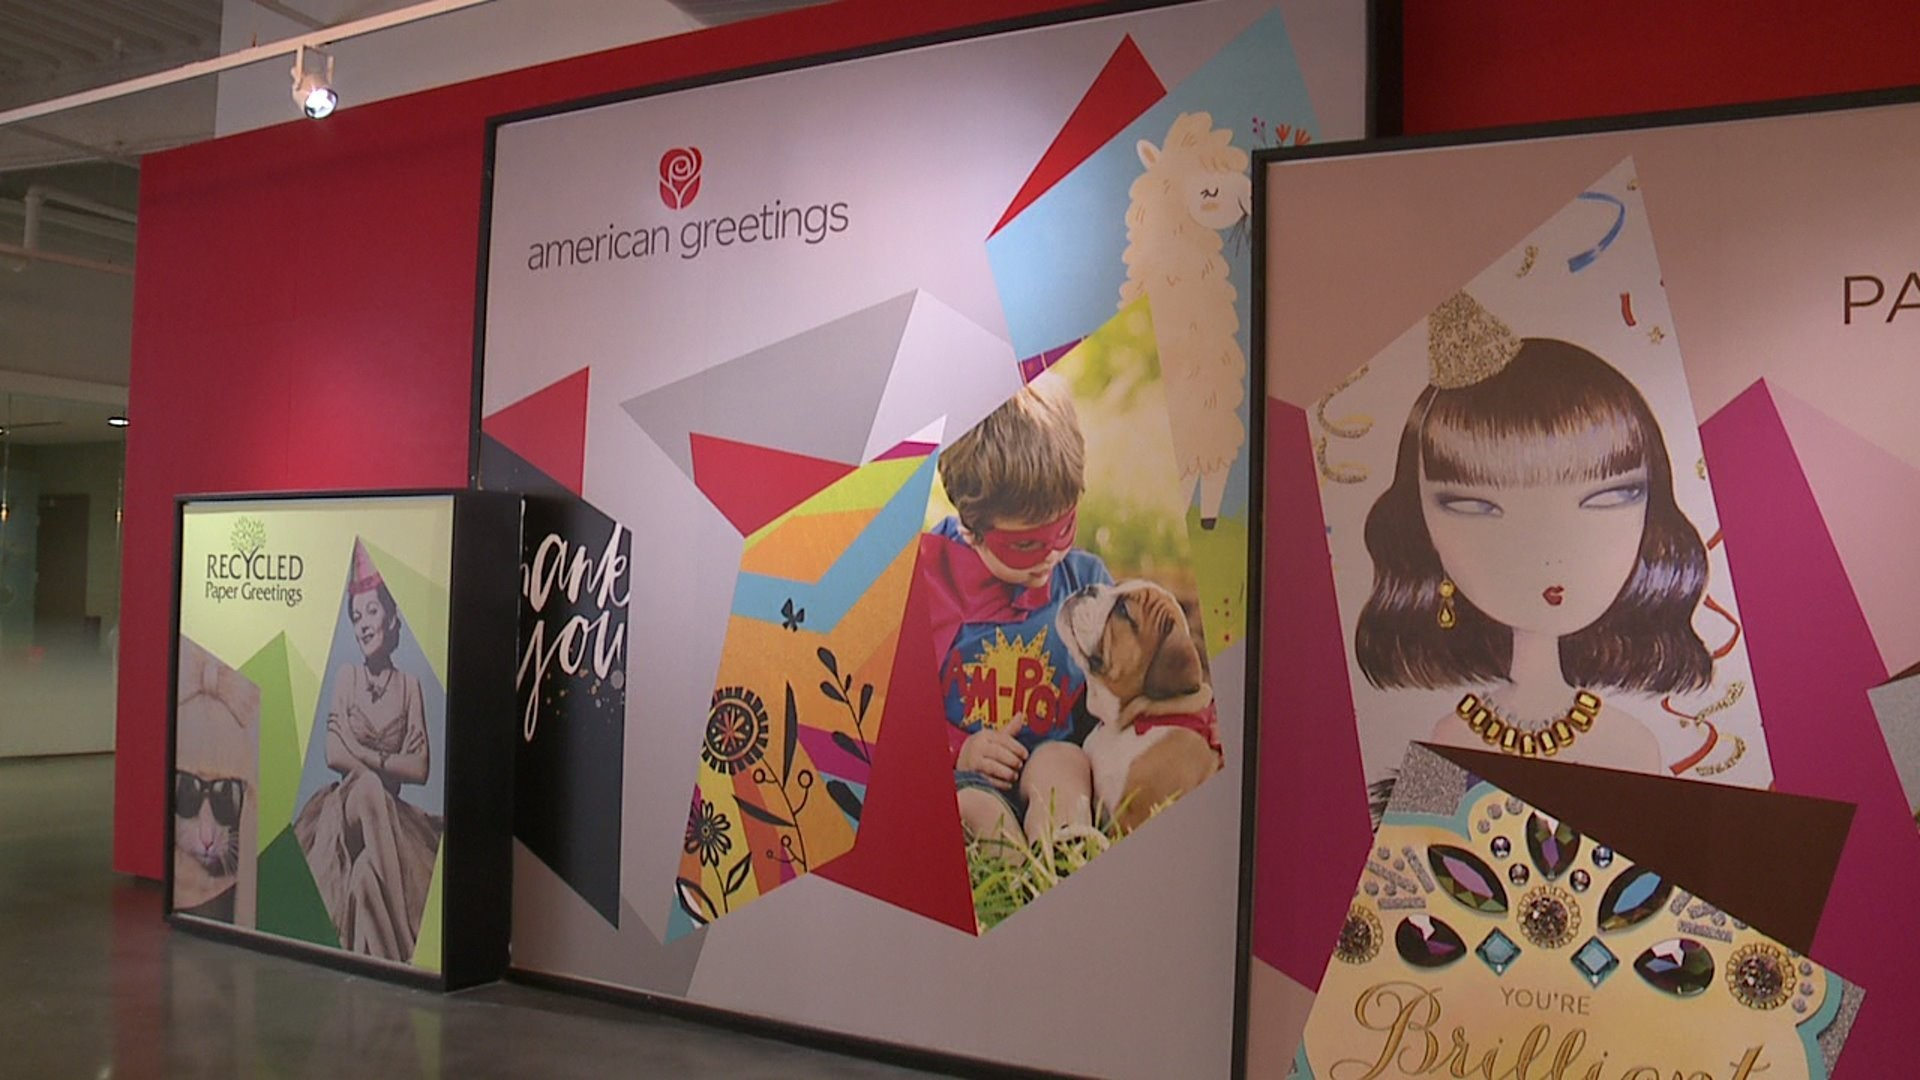 Res: 1920x1080, American Greetings laying off employees at Crocker Park office | fox8.com